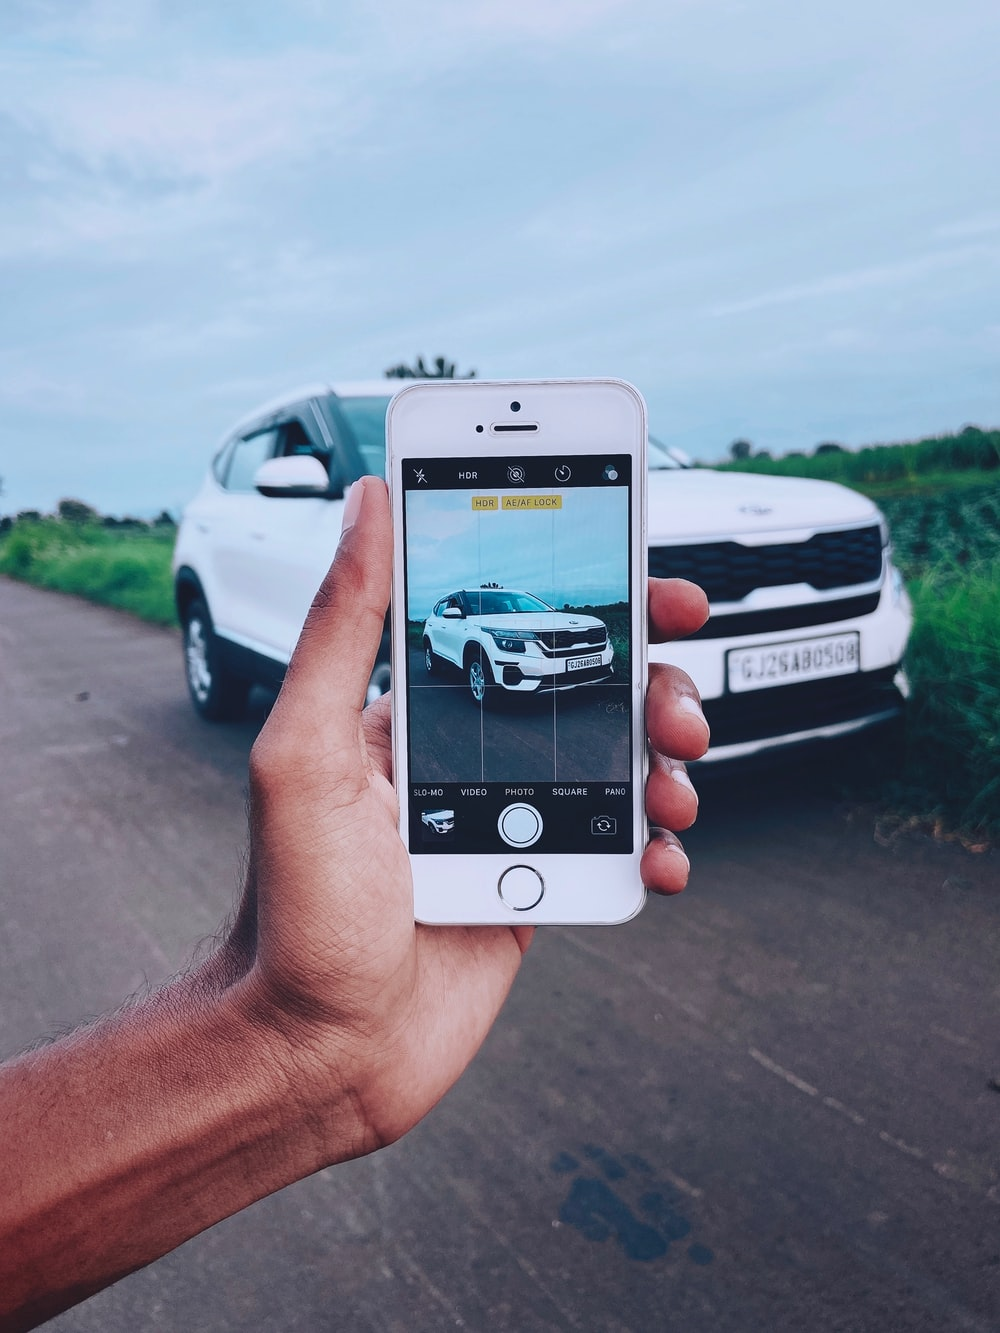 person holding silver iphone 6 taking photo of white car on road during daytime